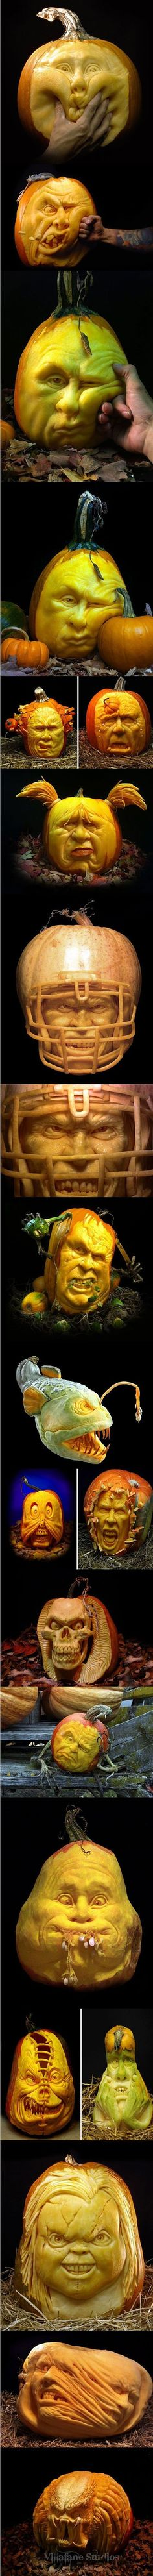 10 Non-Scary Pumpkin Ideas for Halloween   Carved pumpkins ...